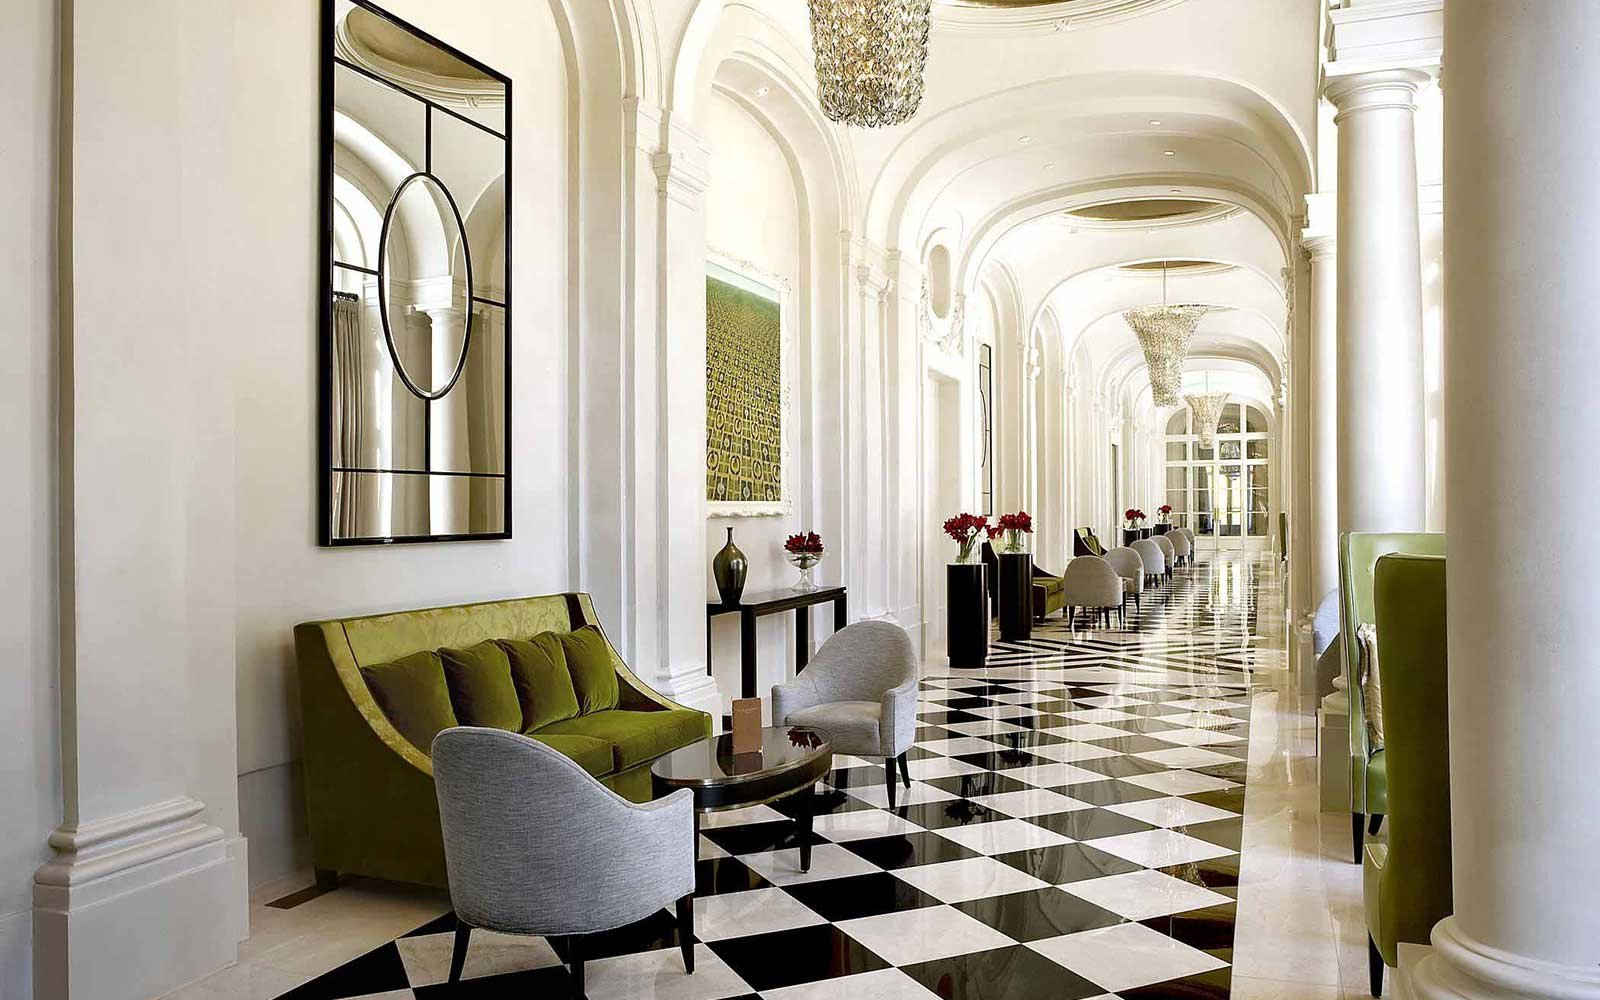 Trianon Palace, a Waldorf Astoria Hotel Resort in Europe